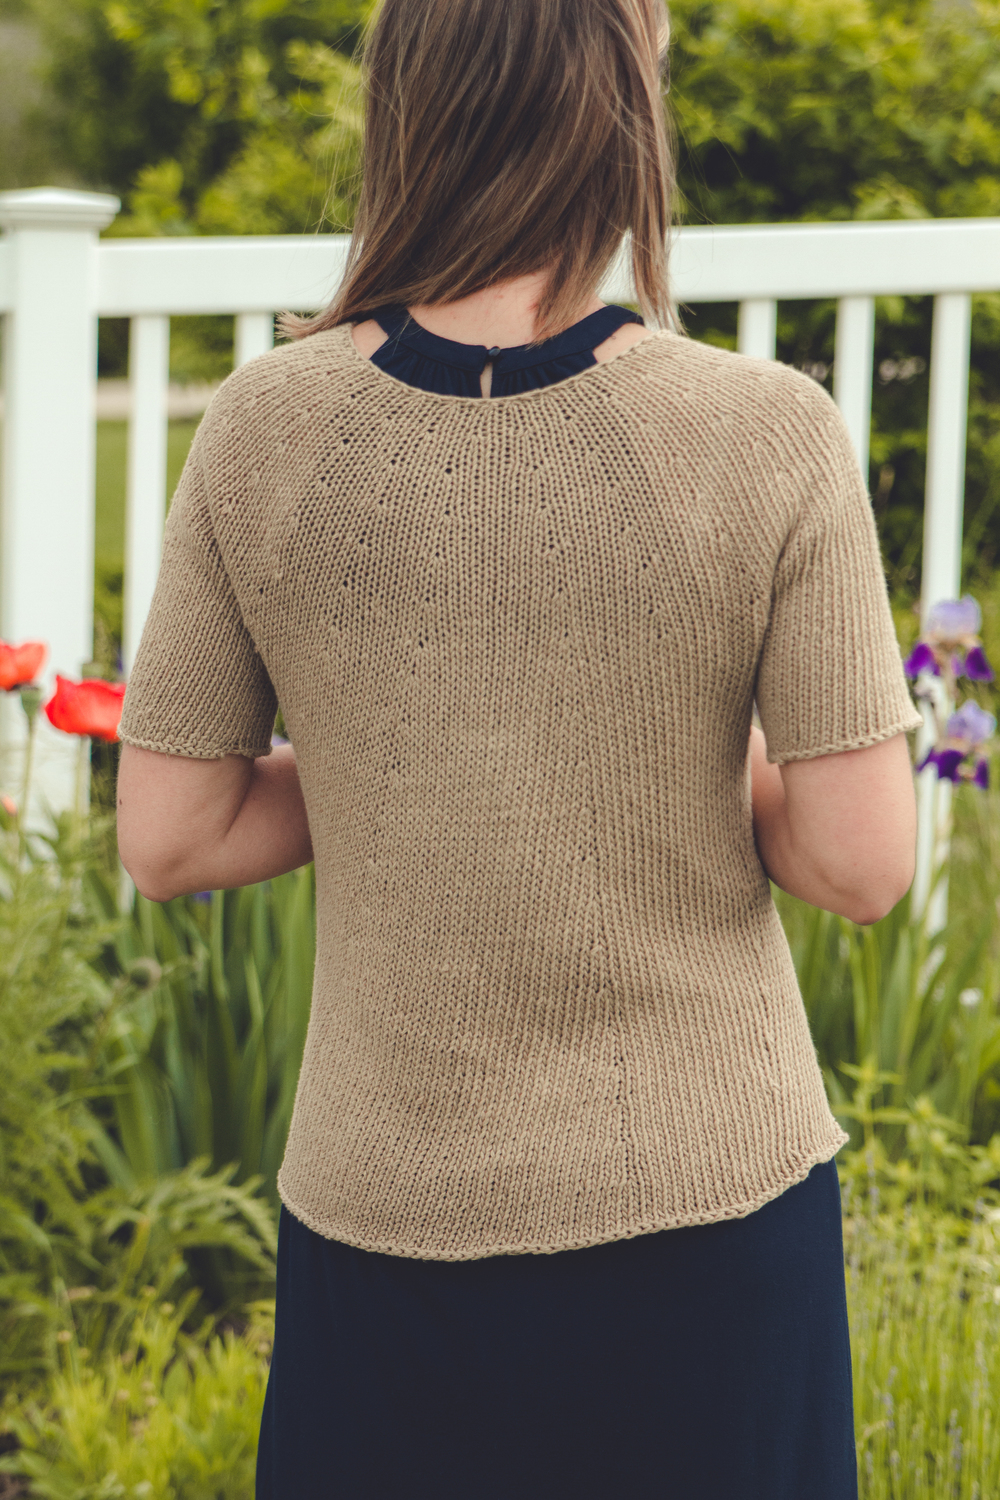 Quick Sand, by Heidi Kirrmaier, in FibraNatura Good Earth Solids, Safari